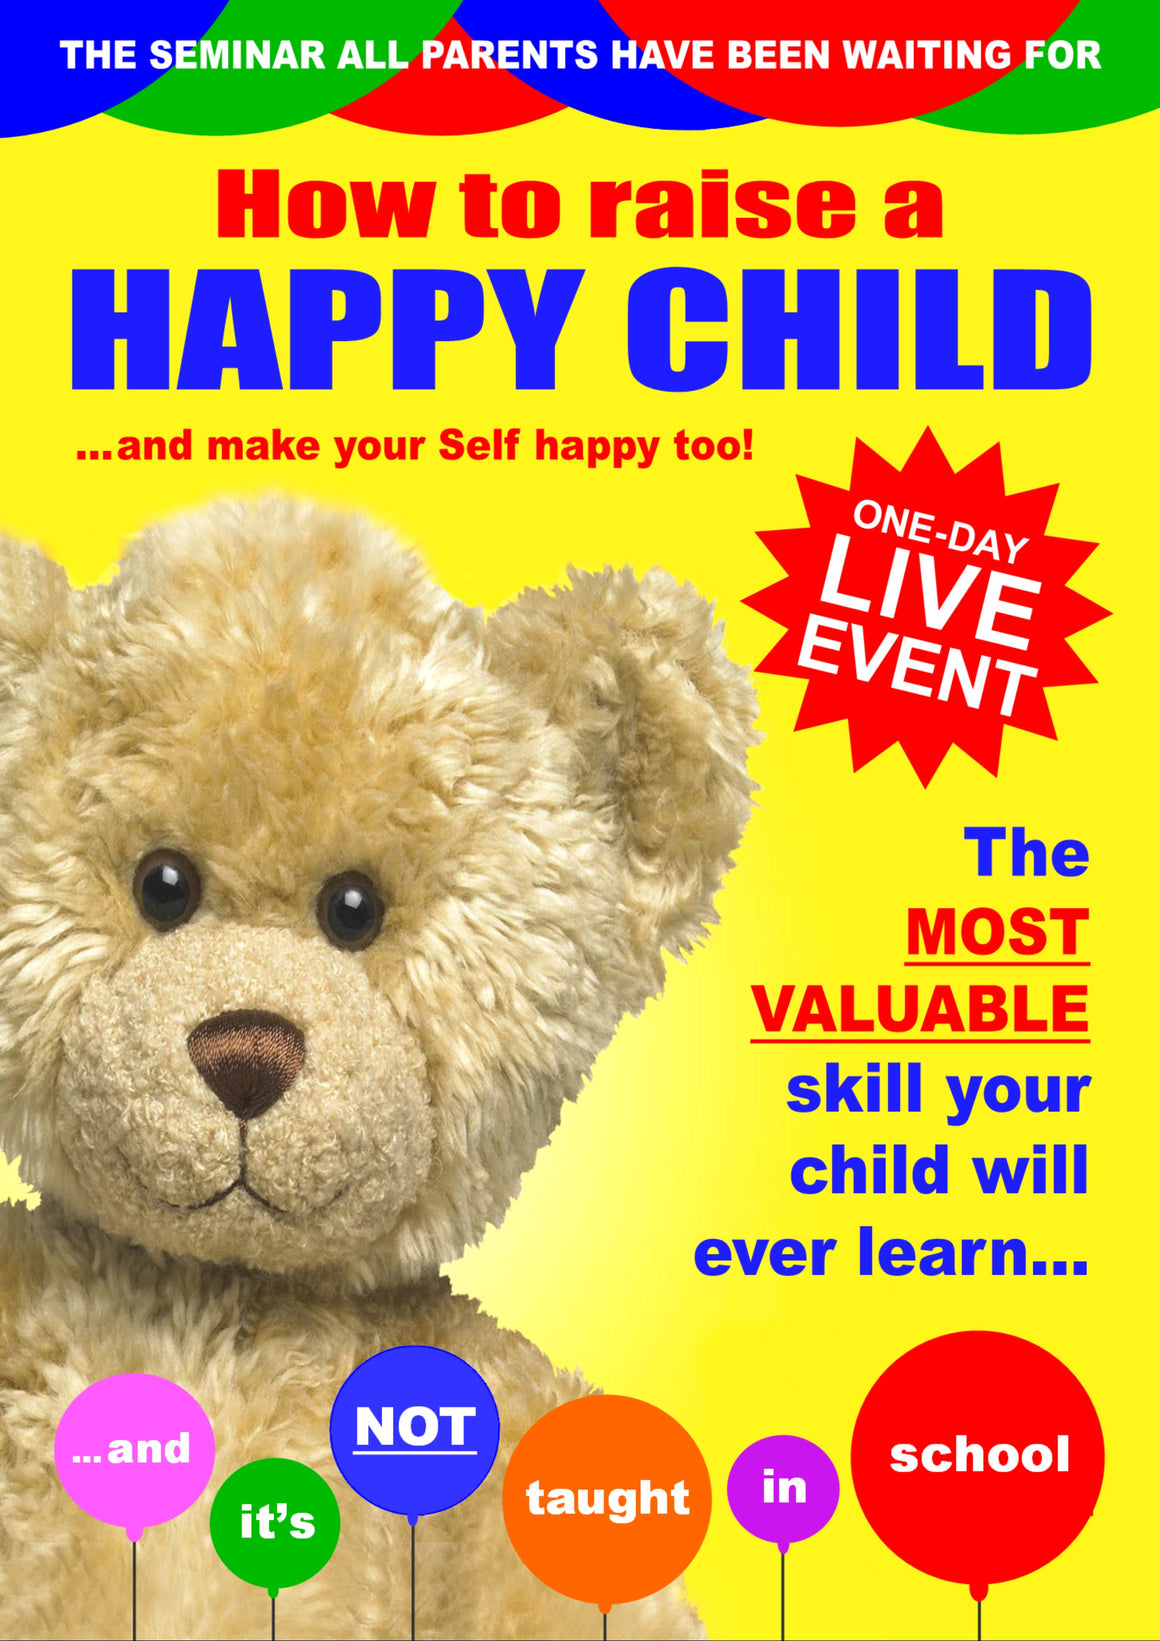 Live Event:  'How to Raise a Happy Child' one-day workshop for parents and carers